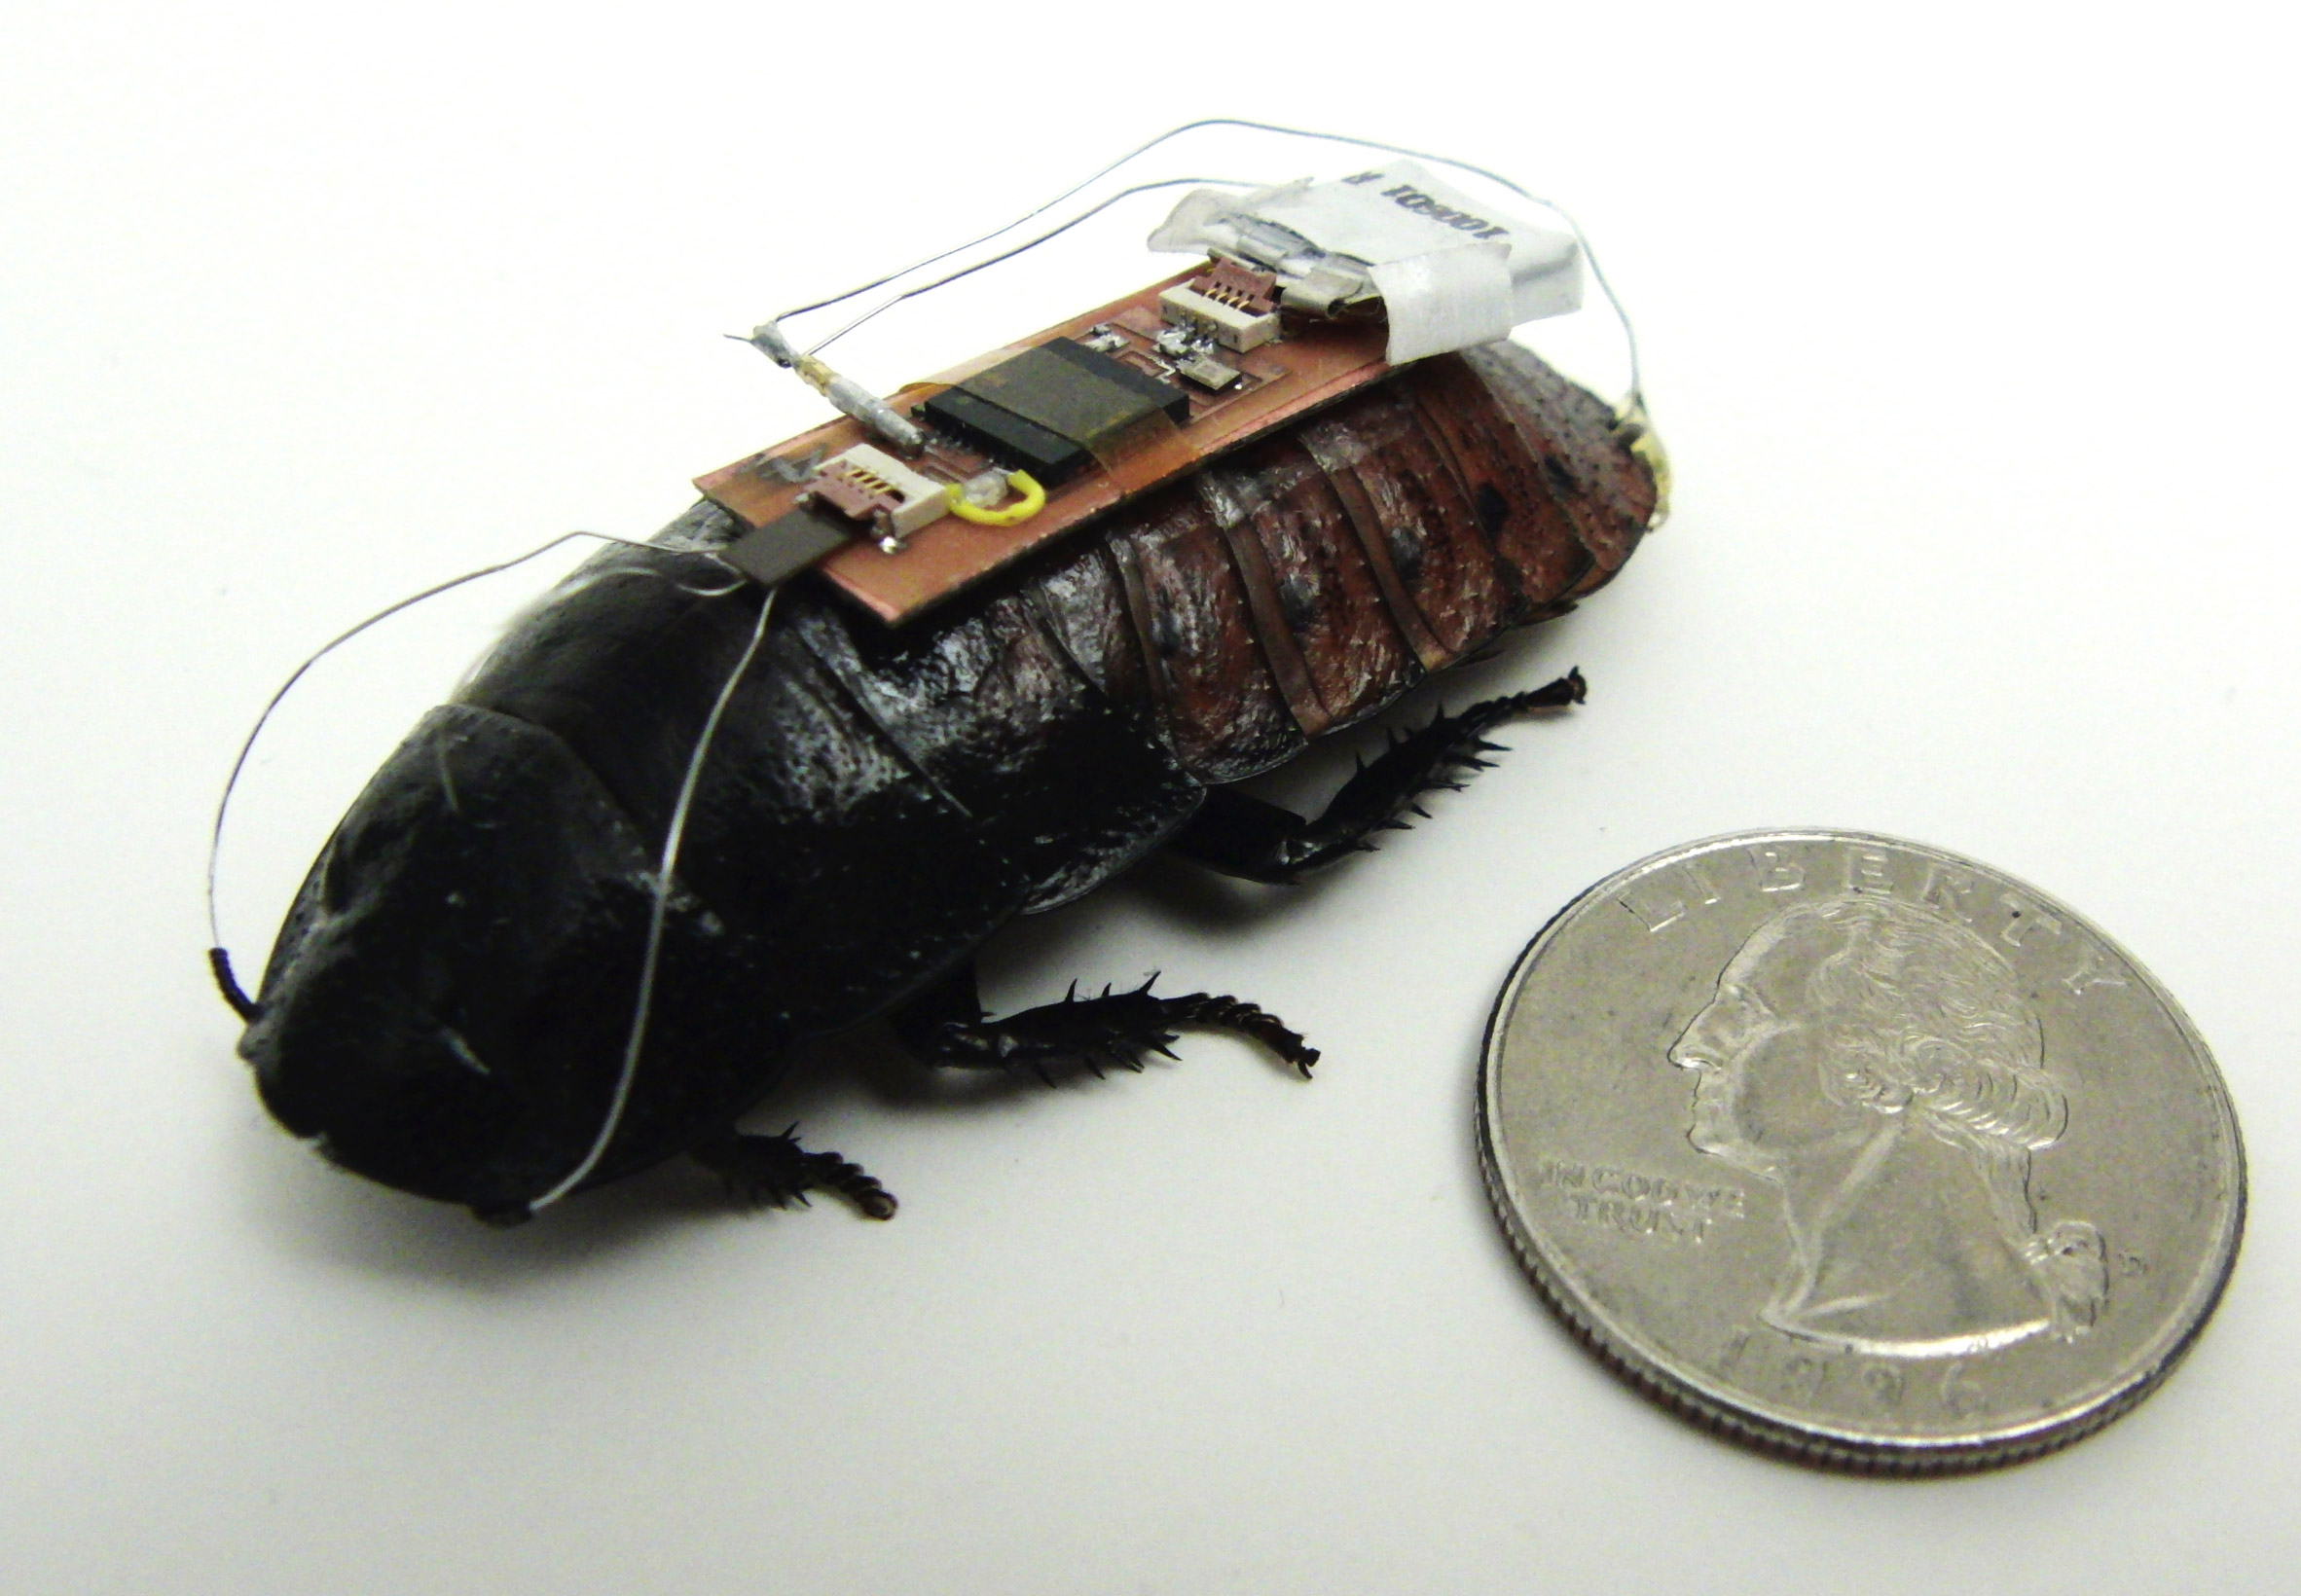 Swarms of cyborg insects could be used to map dangerous environments